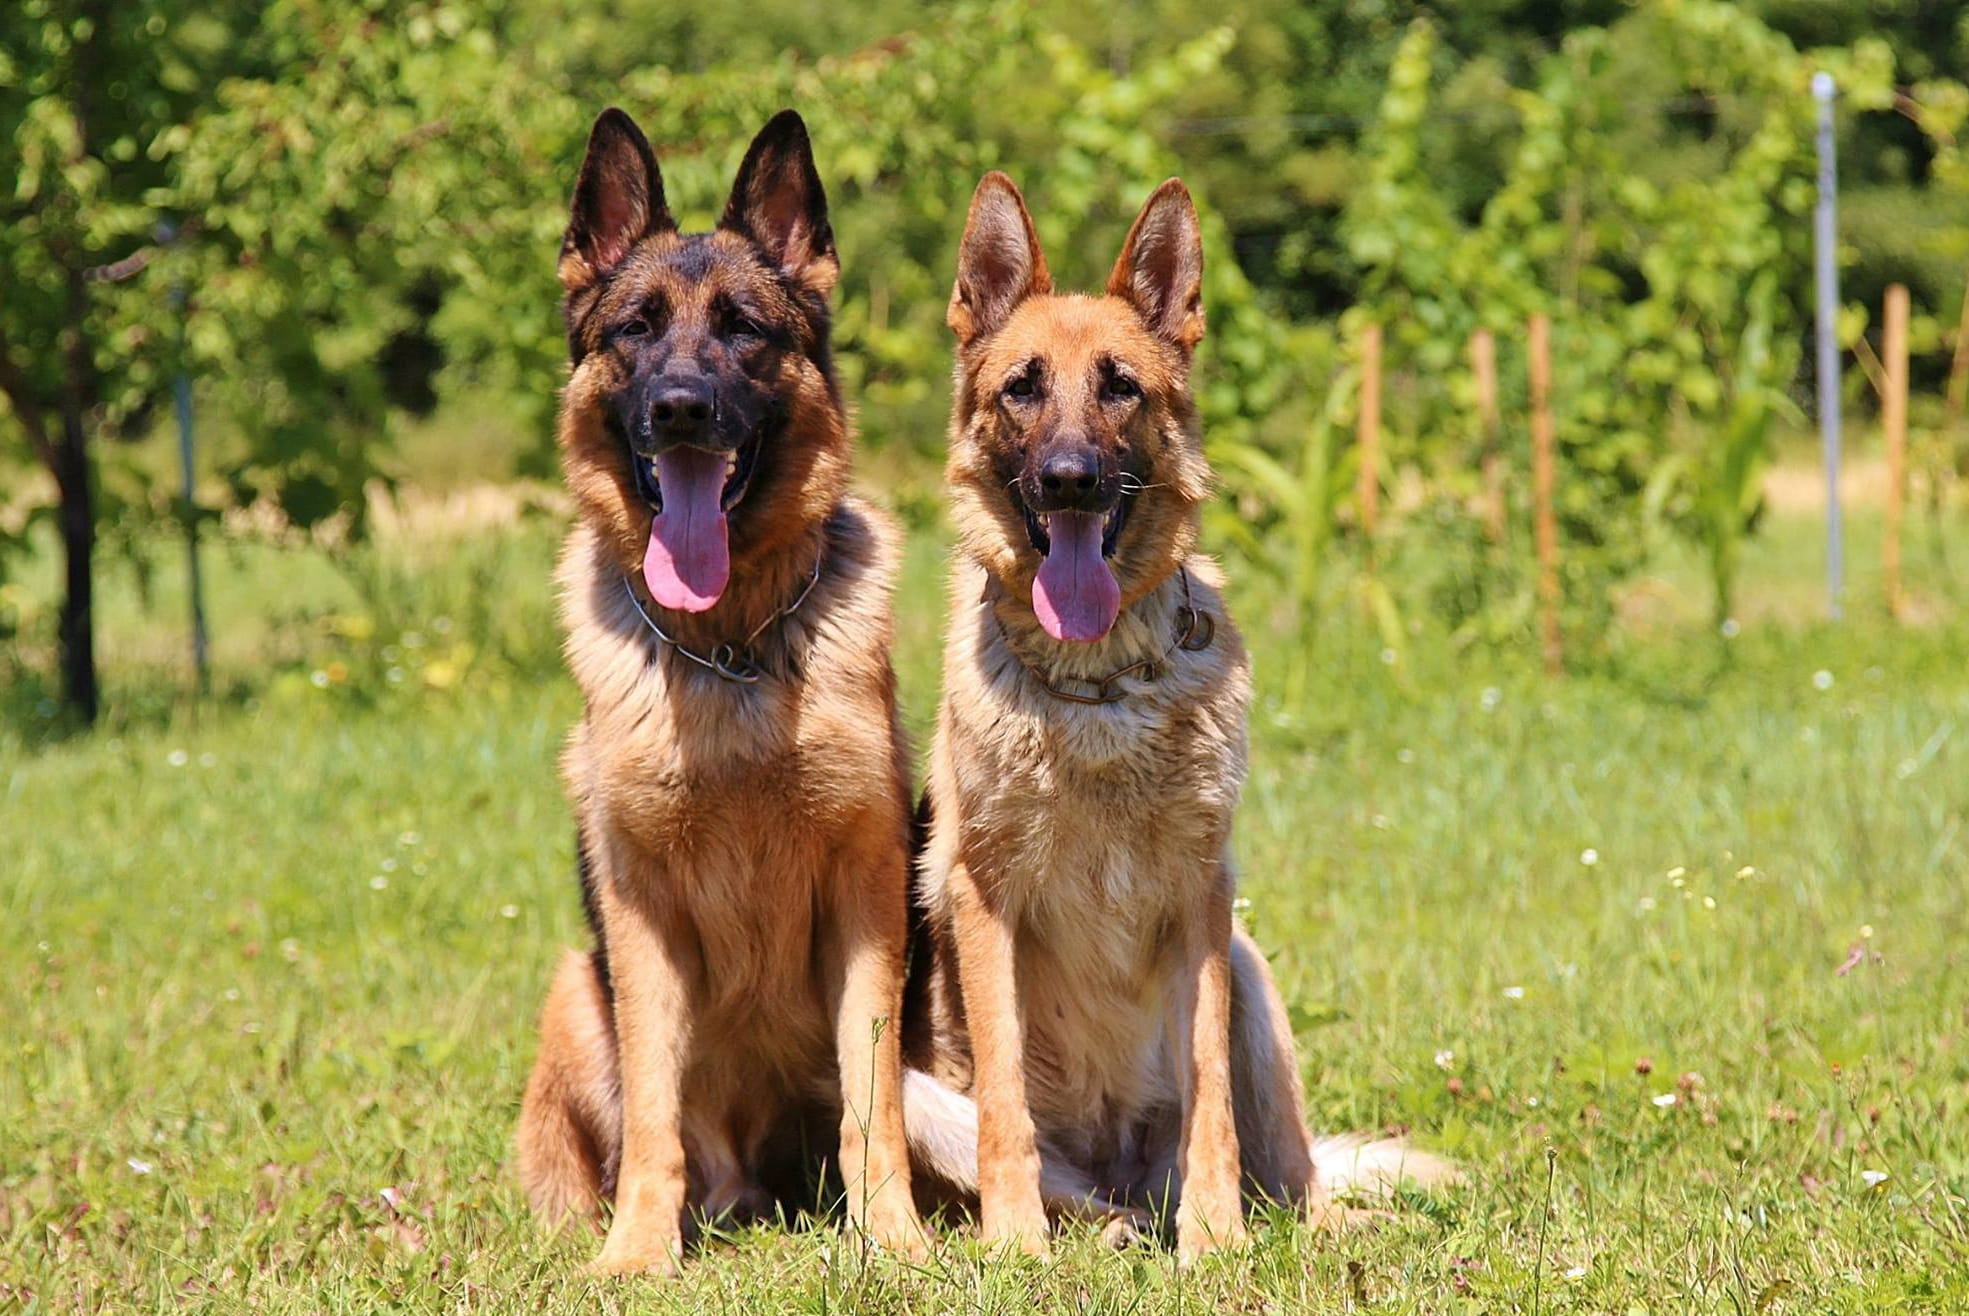 dogs-888415